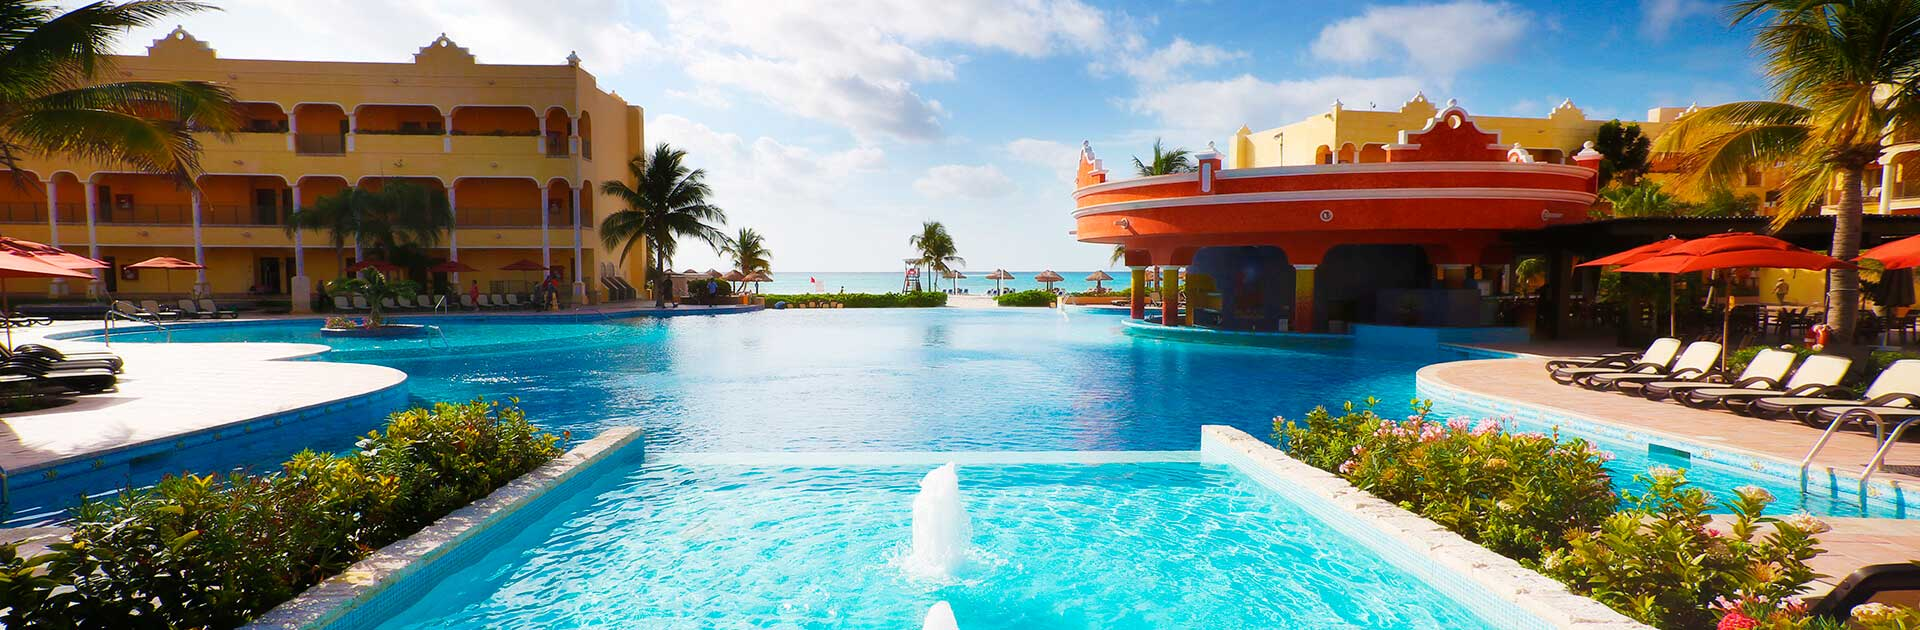 Gfk Pool Victoria The Royal Haciendas Resort In Riviera Maya Beach Royal Reservations